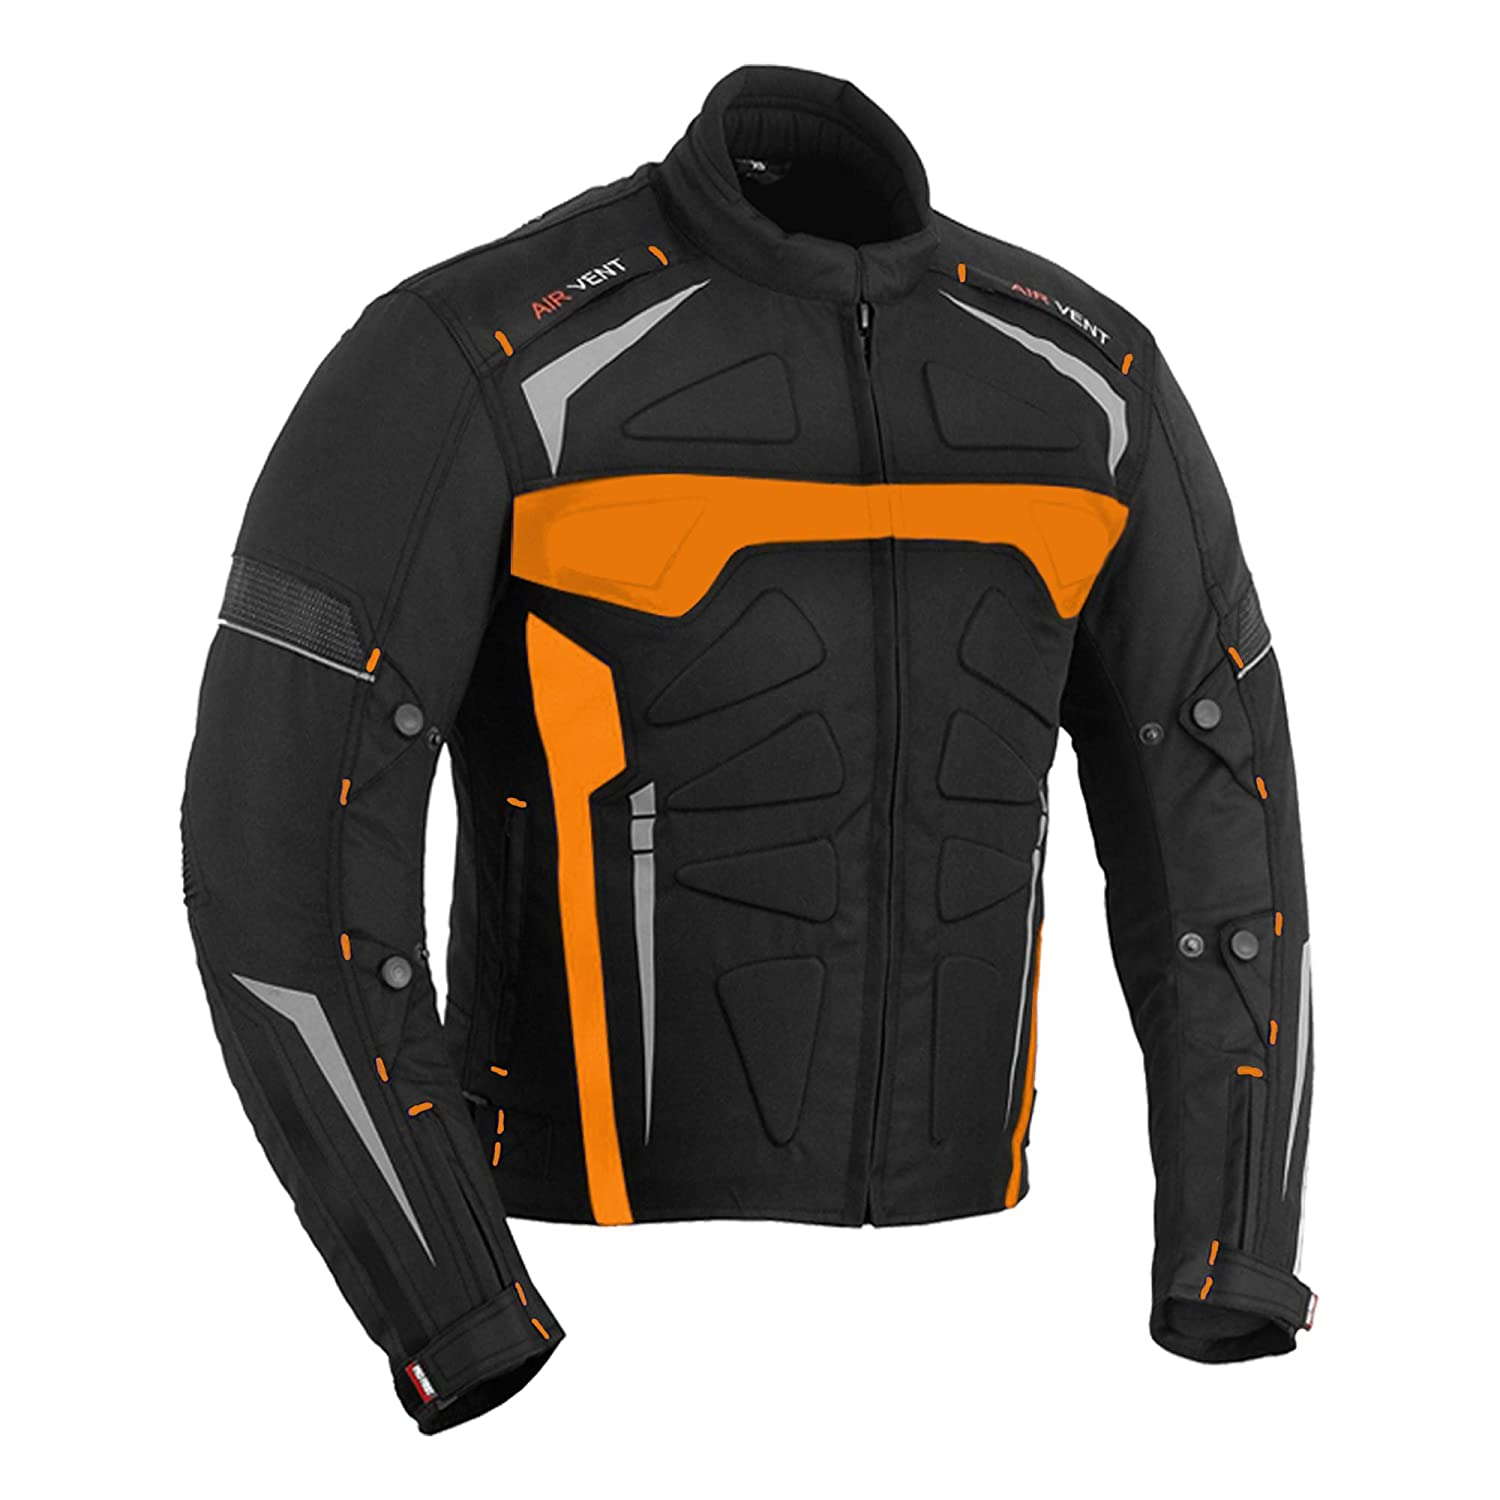 Motorbike Jackets Motorcycle Bike Rider Waterproof High Quality Designer Coat Shirt Gears Bartack Sewed All Weather Jacket for Mens Adults Boys 2X Large